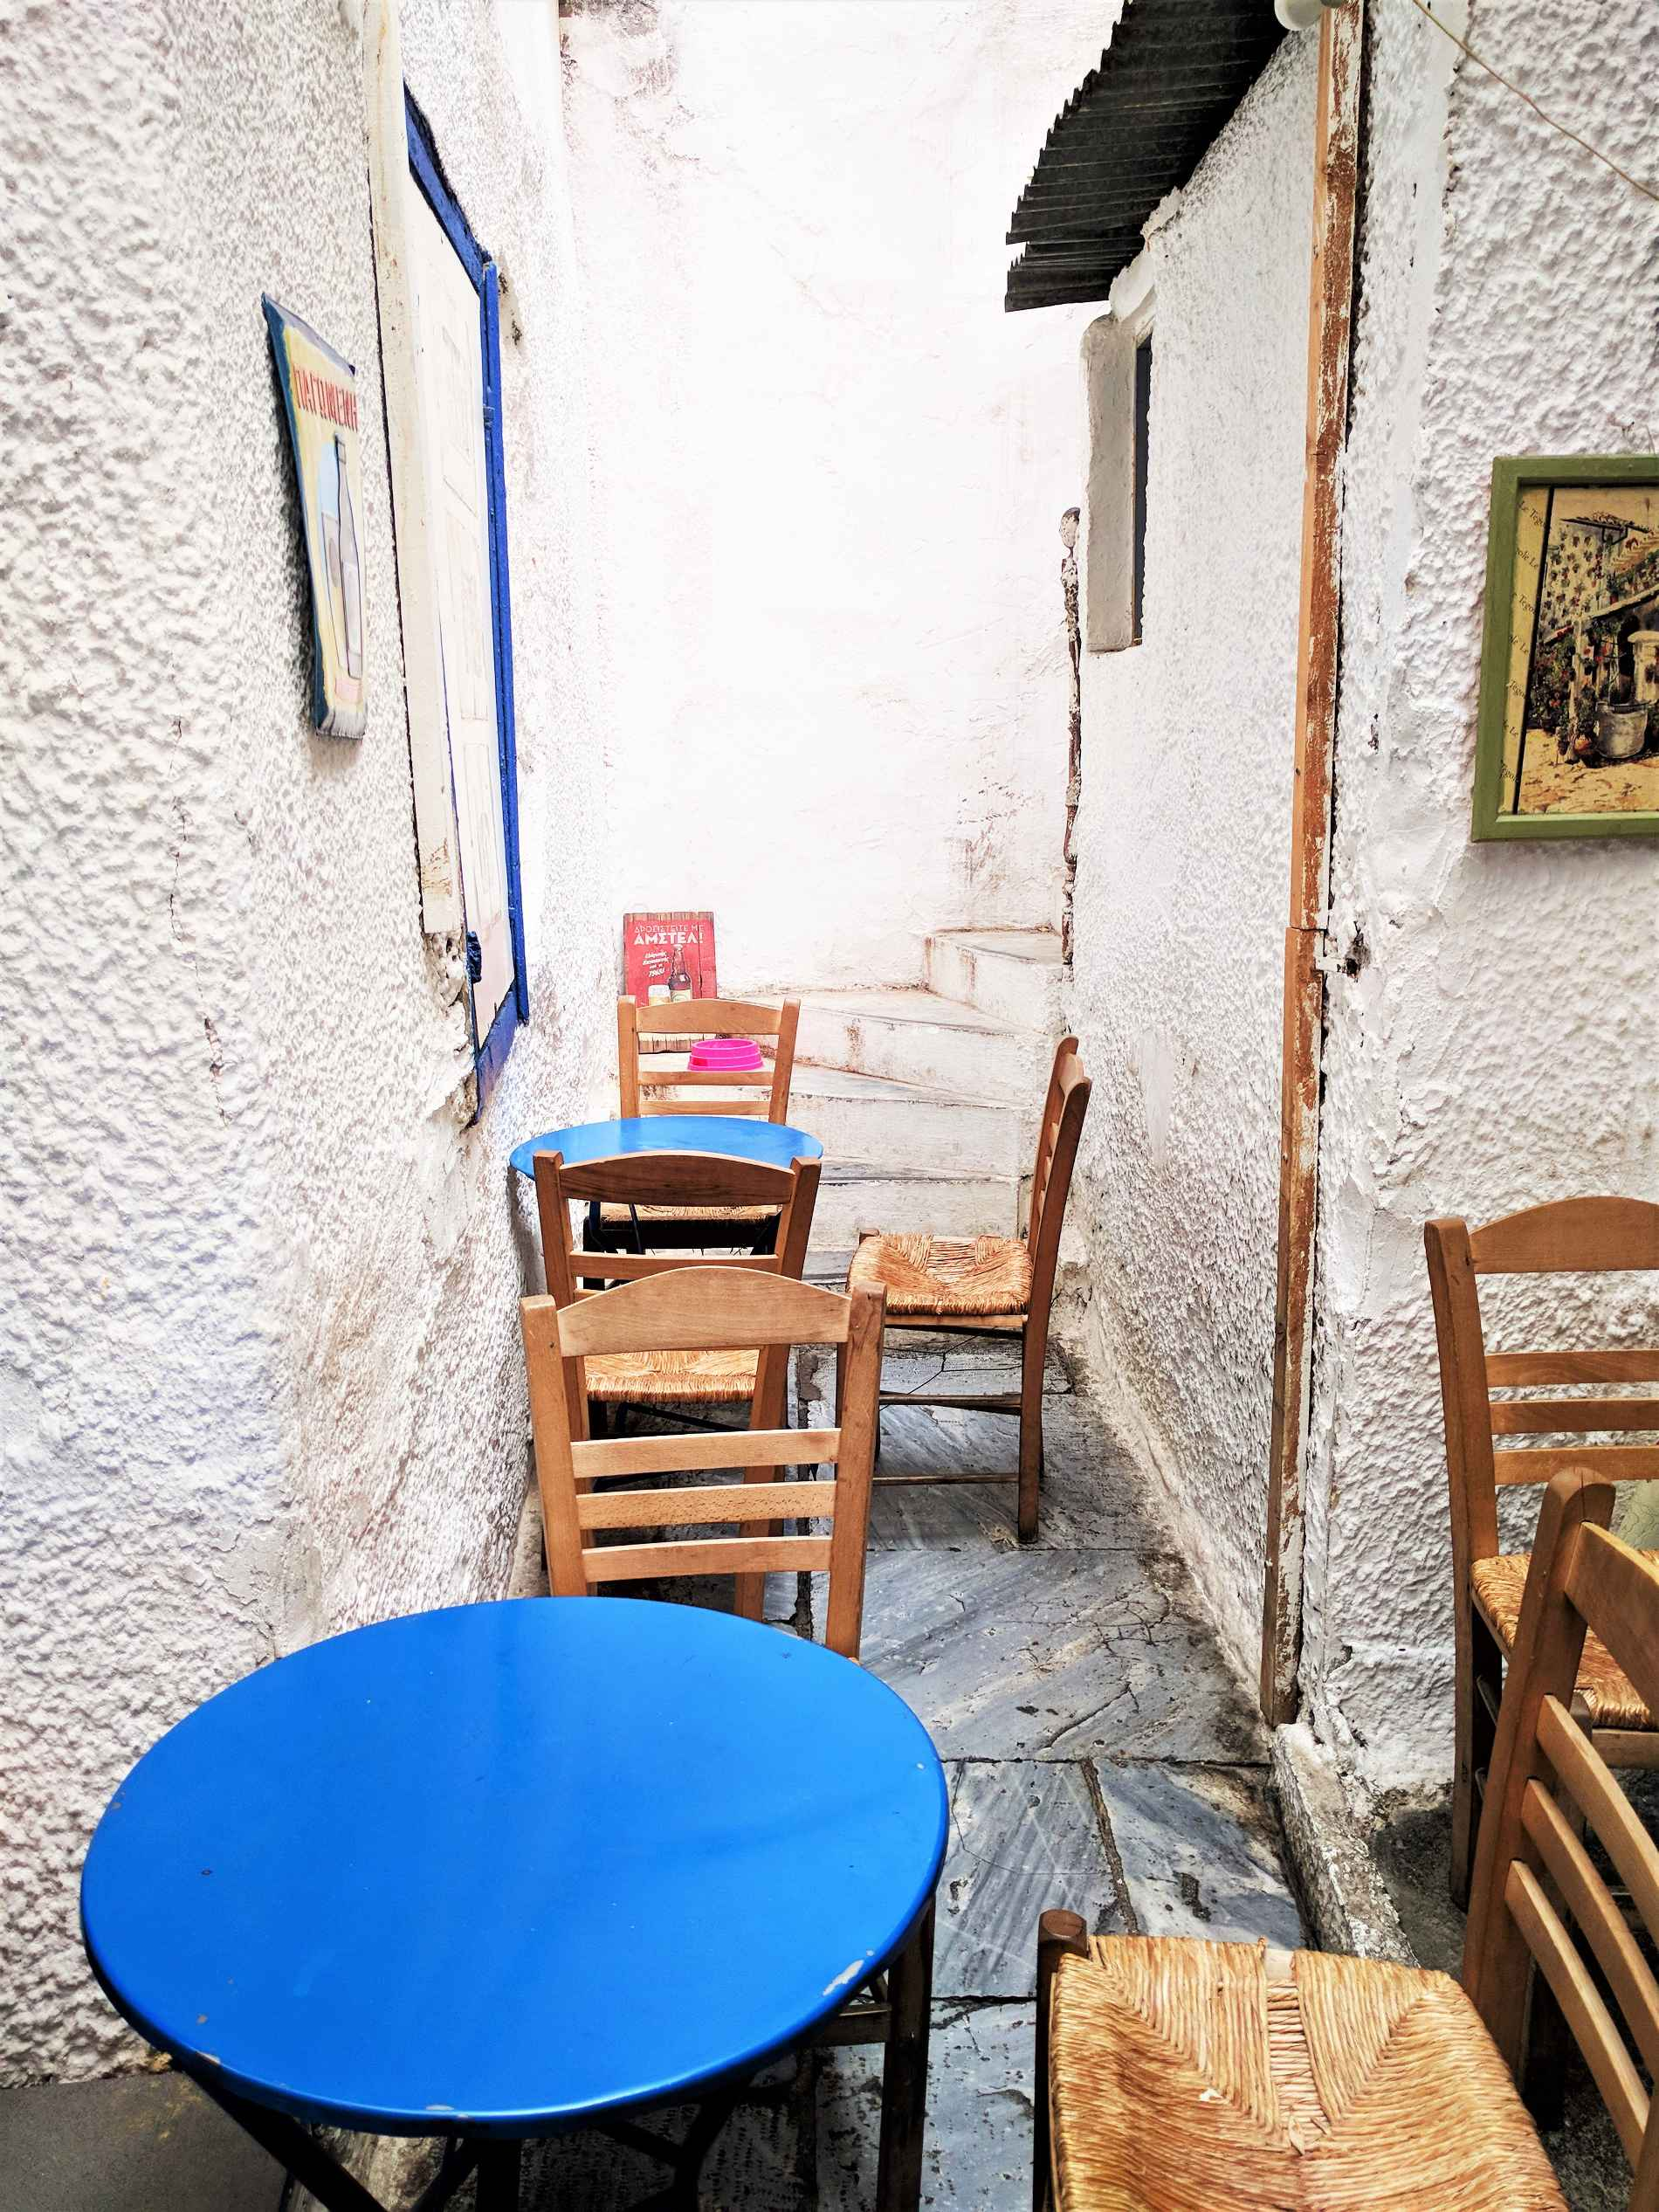 What could be more Greek than a blue and white yard in the center of Athens?  Avli  in Athens offers delicious and authentic Greek food. Source: Truevoyagers